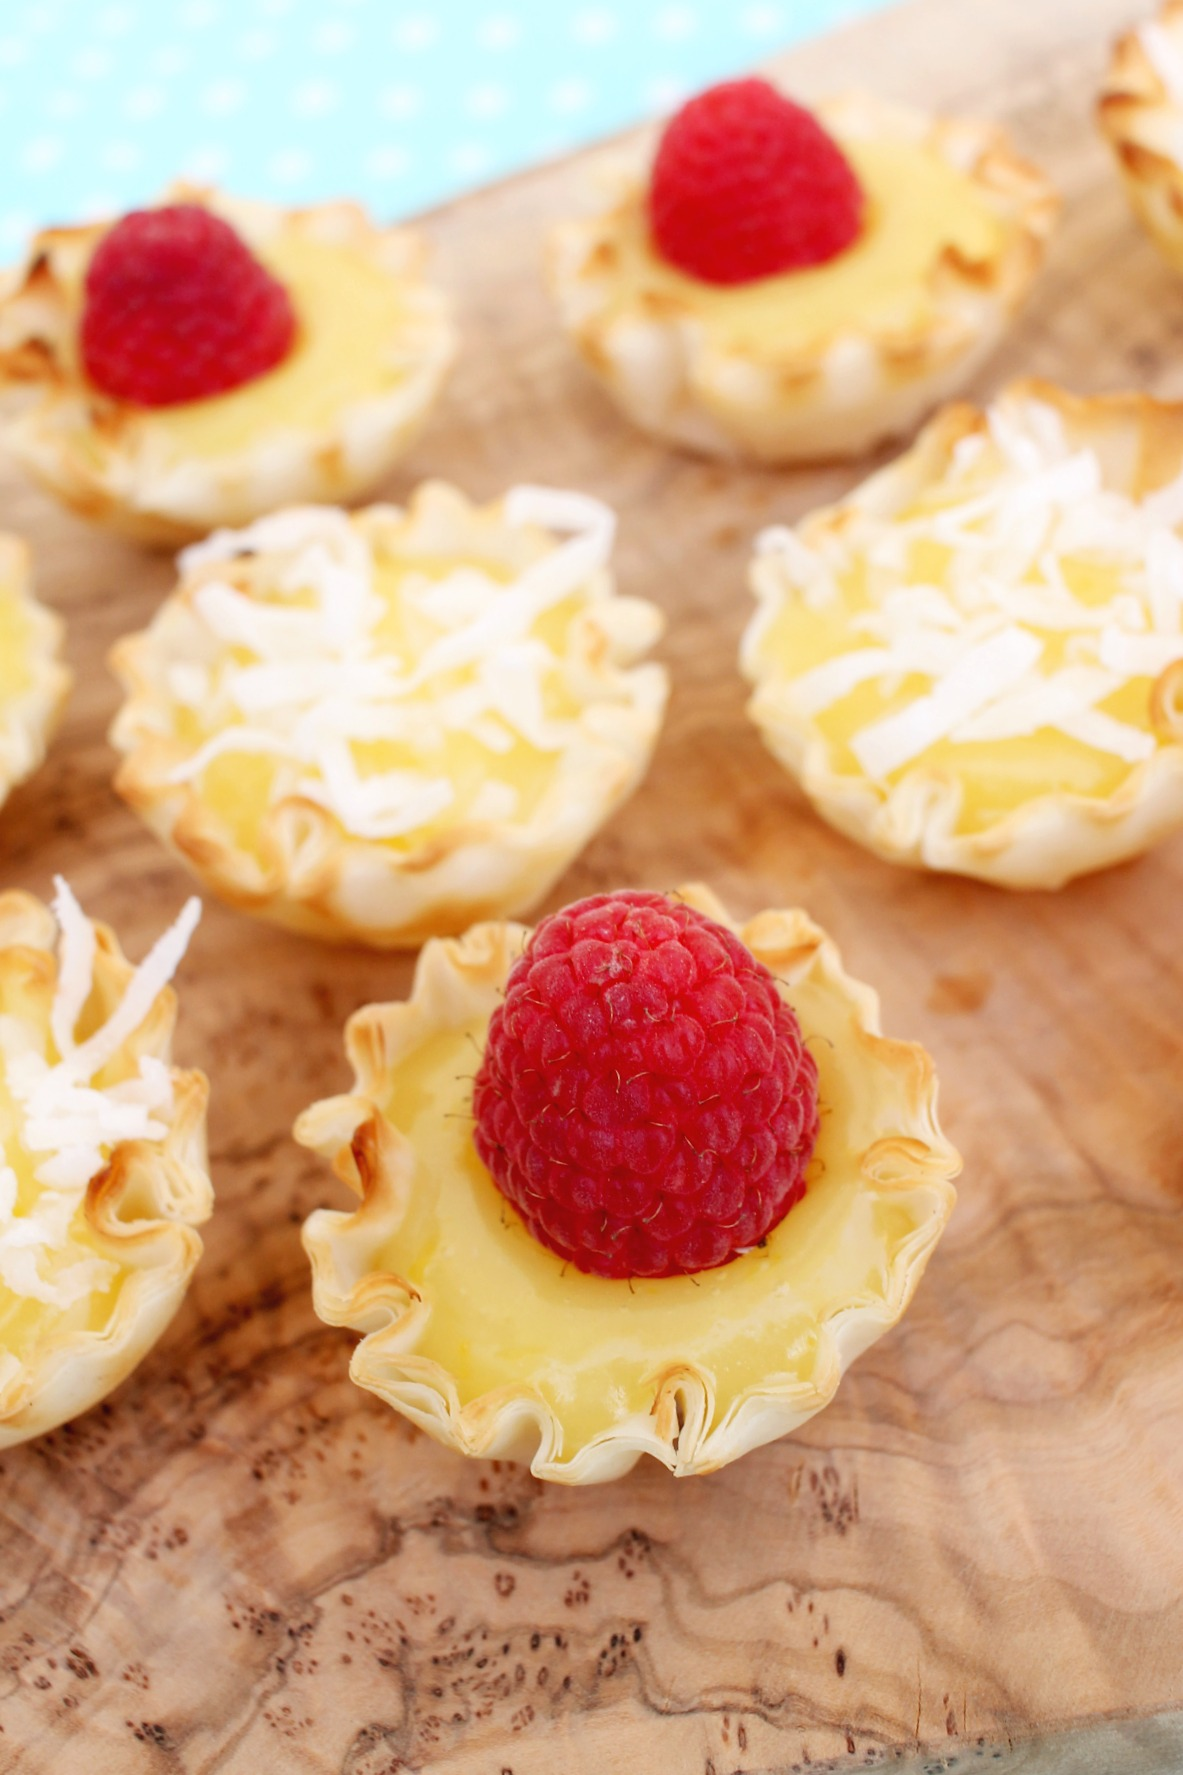 cutting board with lemon curd filled mini tart shells topped with raspberries and shredded coconut